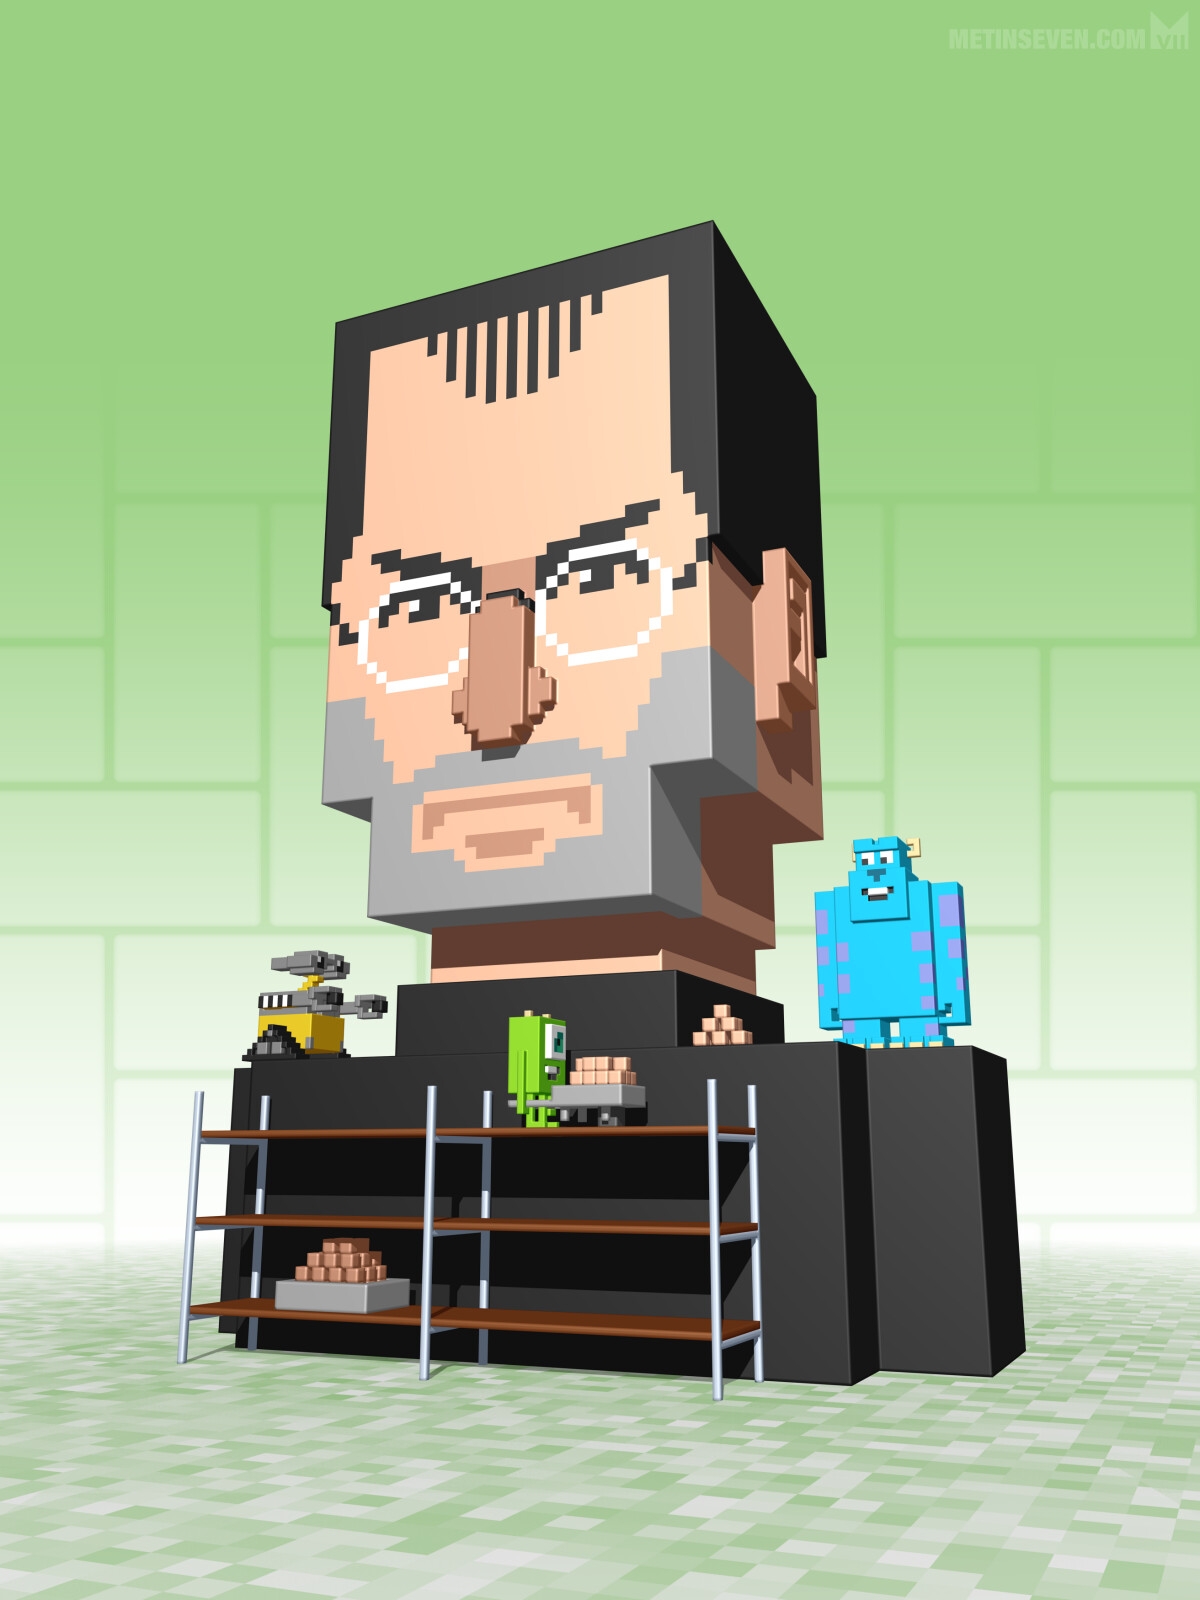 3D pixel style cover illustration regarding Steve Jobs and Pixar, for MacFan magazine